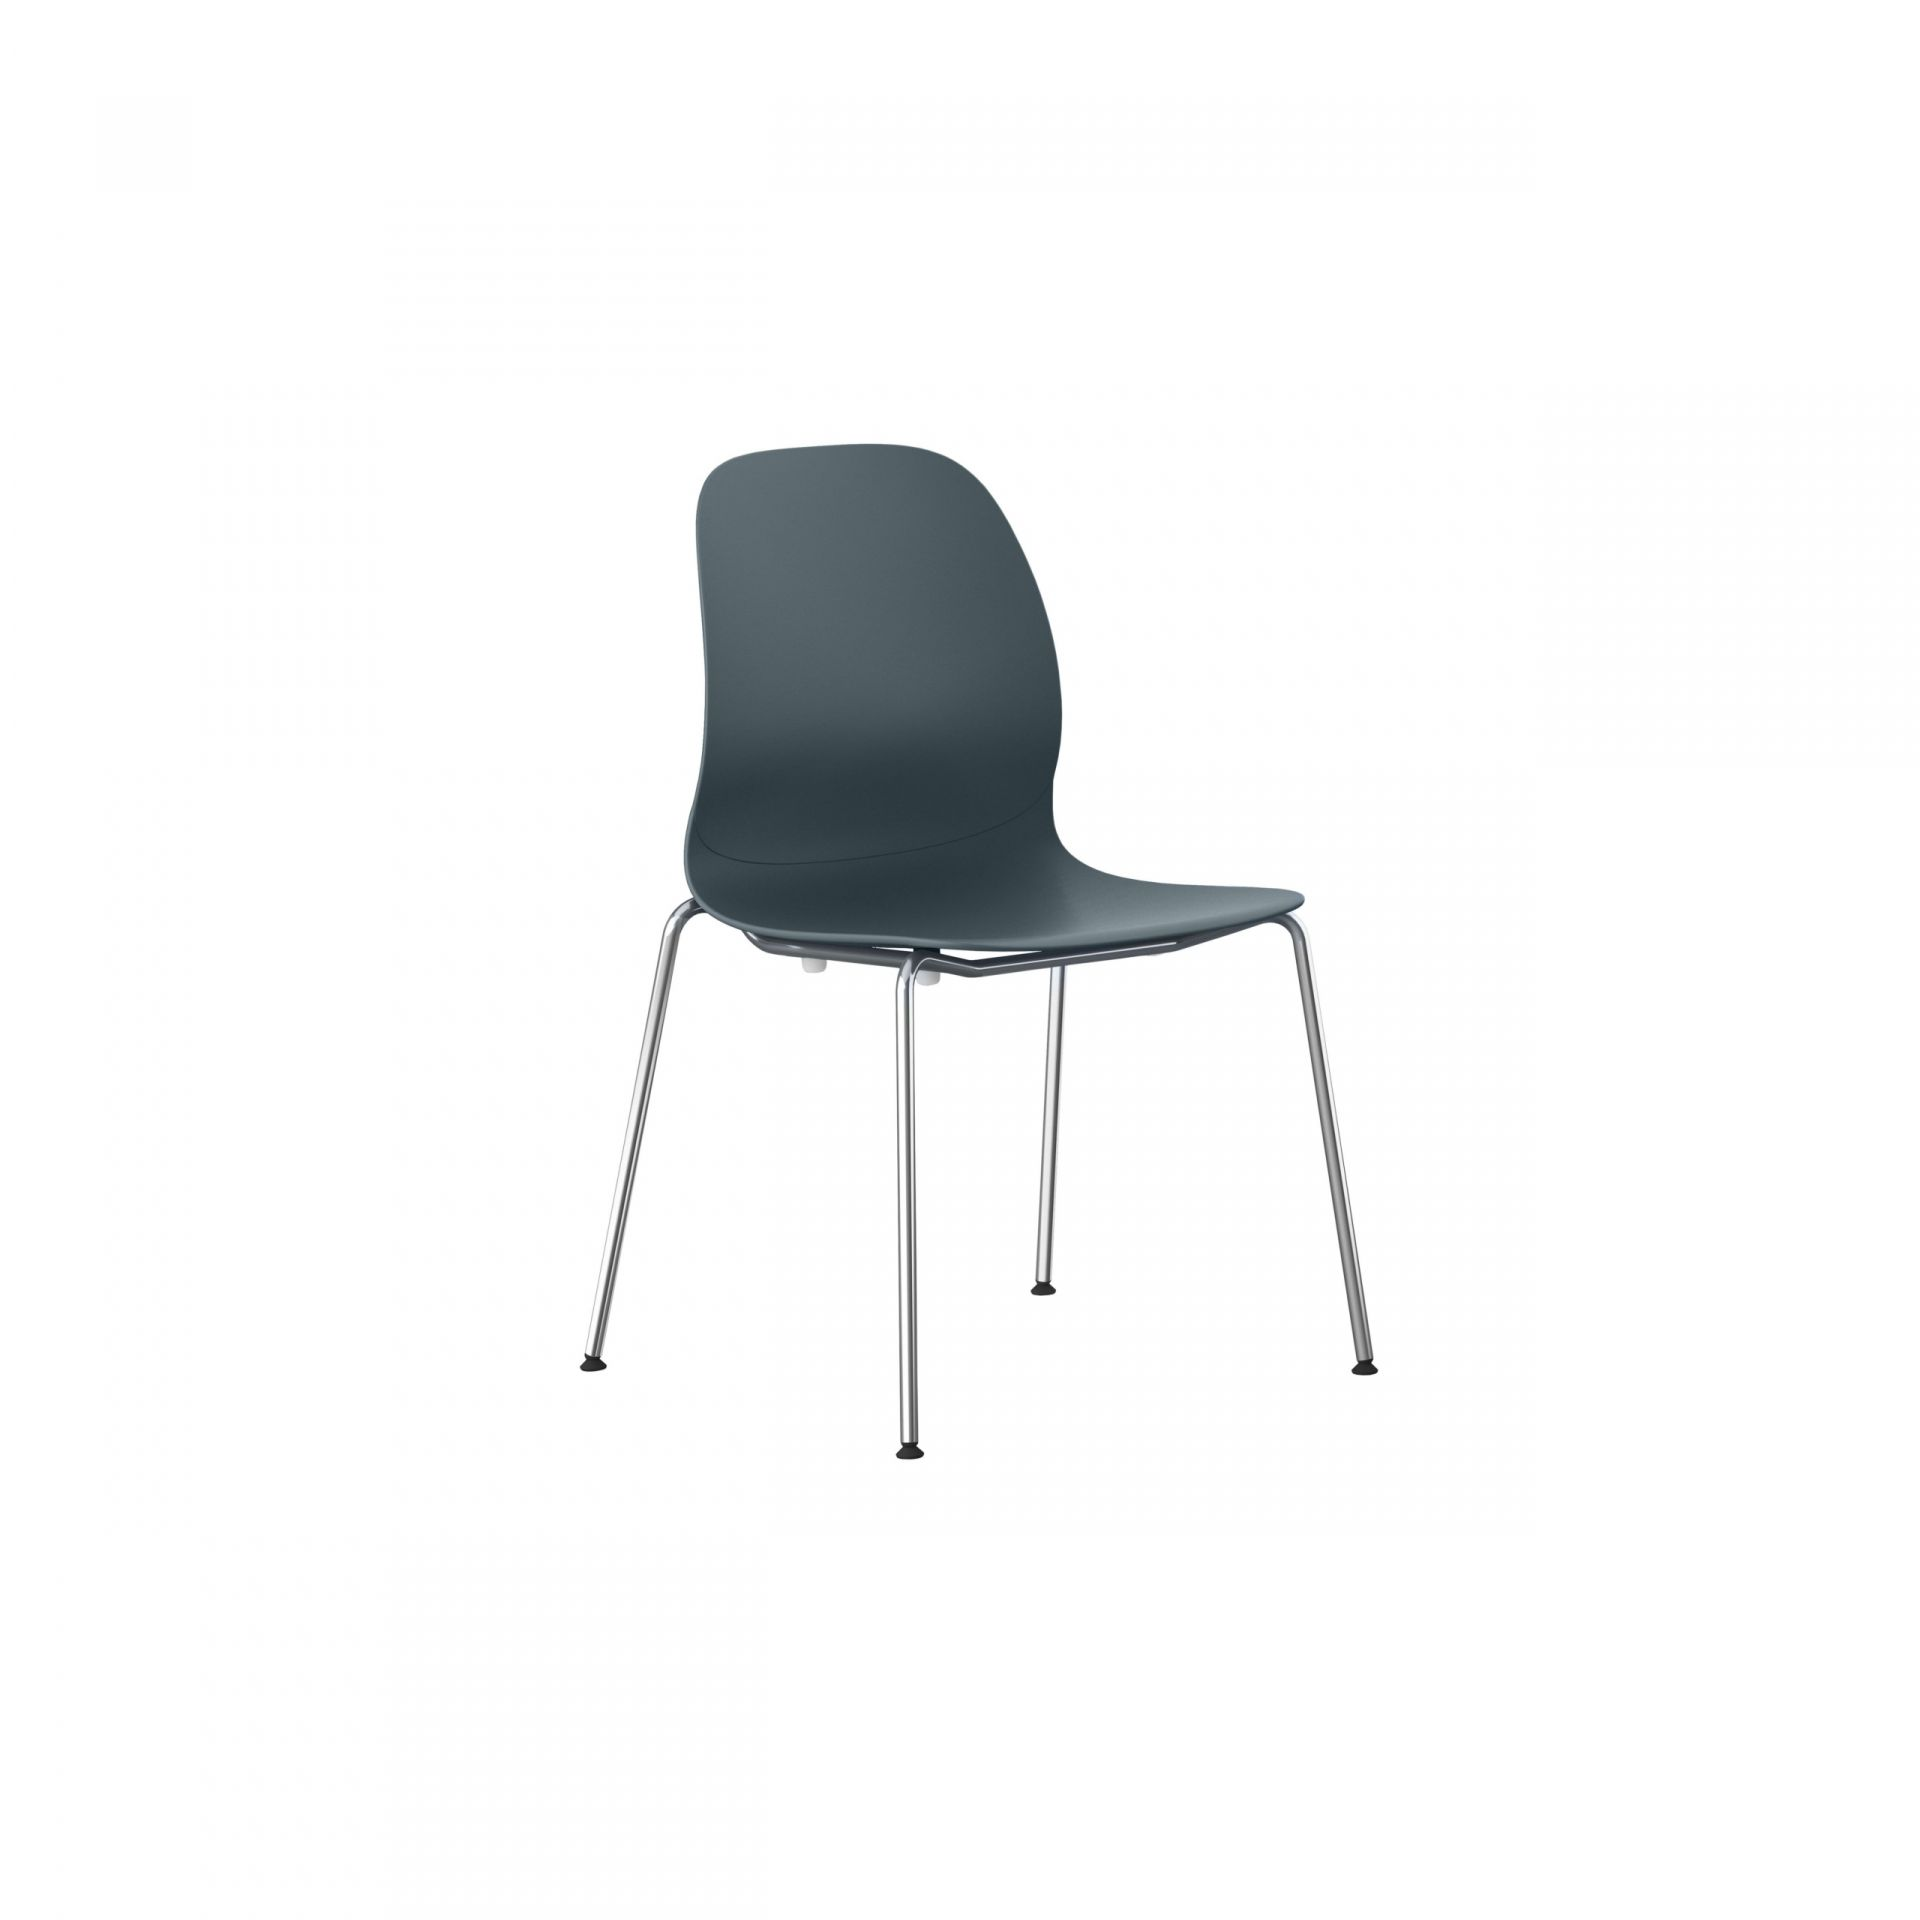 Archie Chair with metal legs